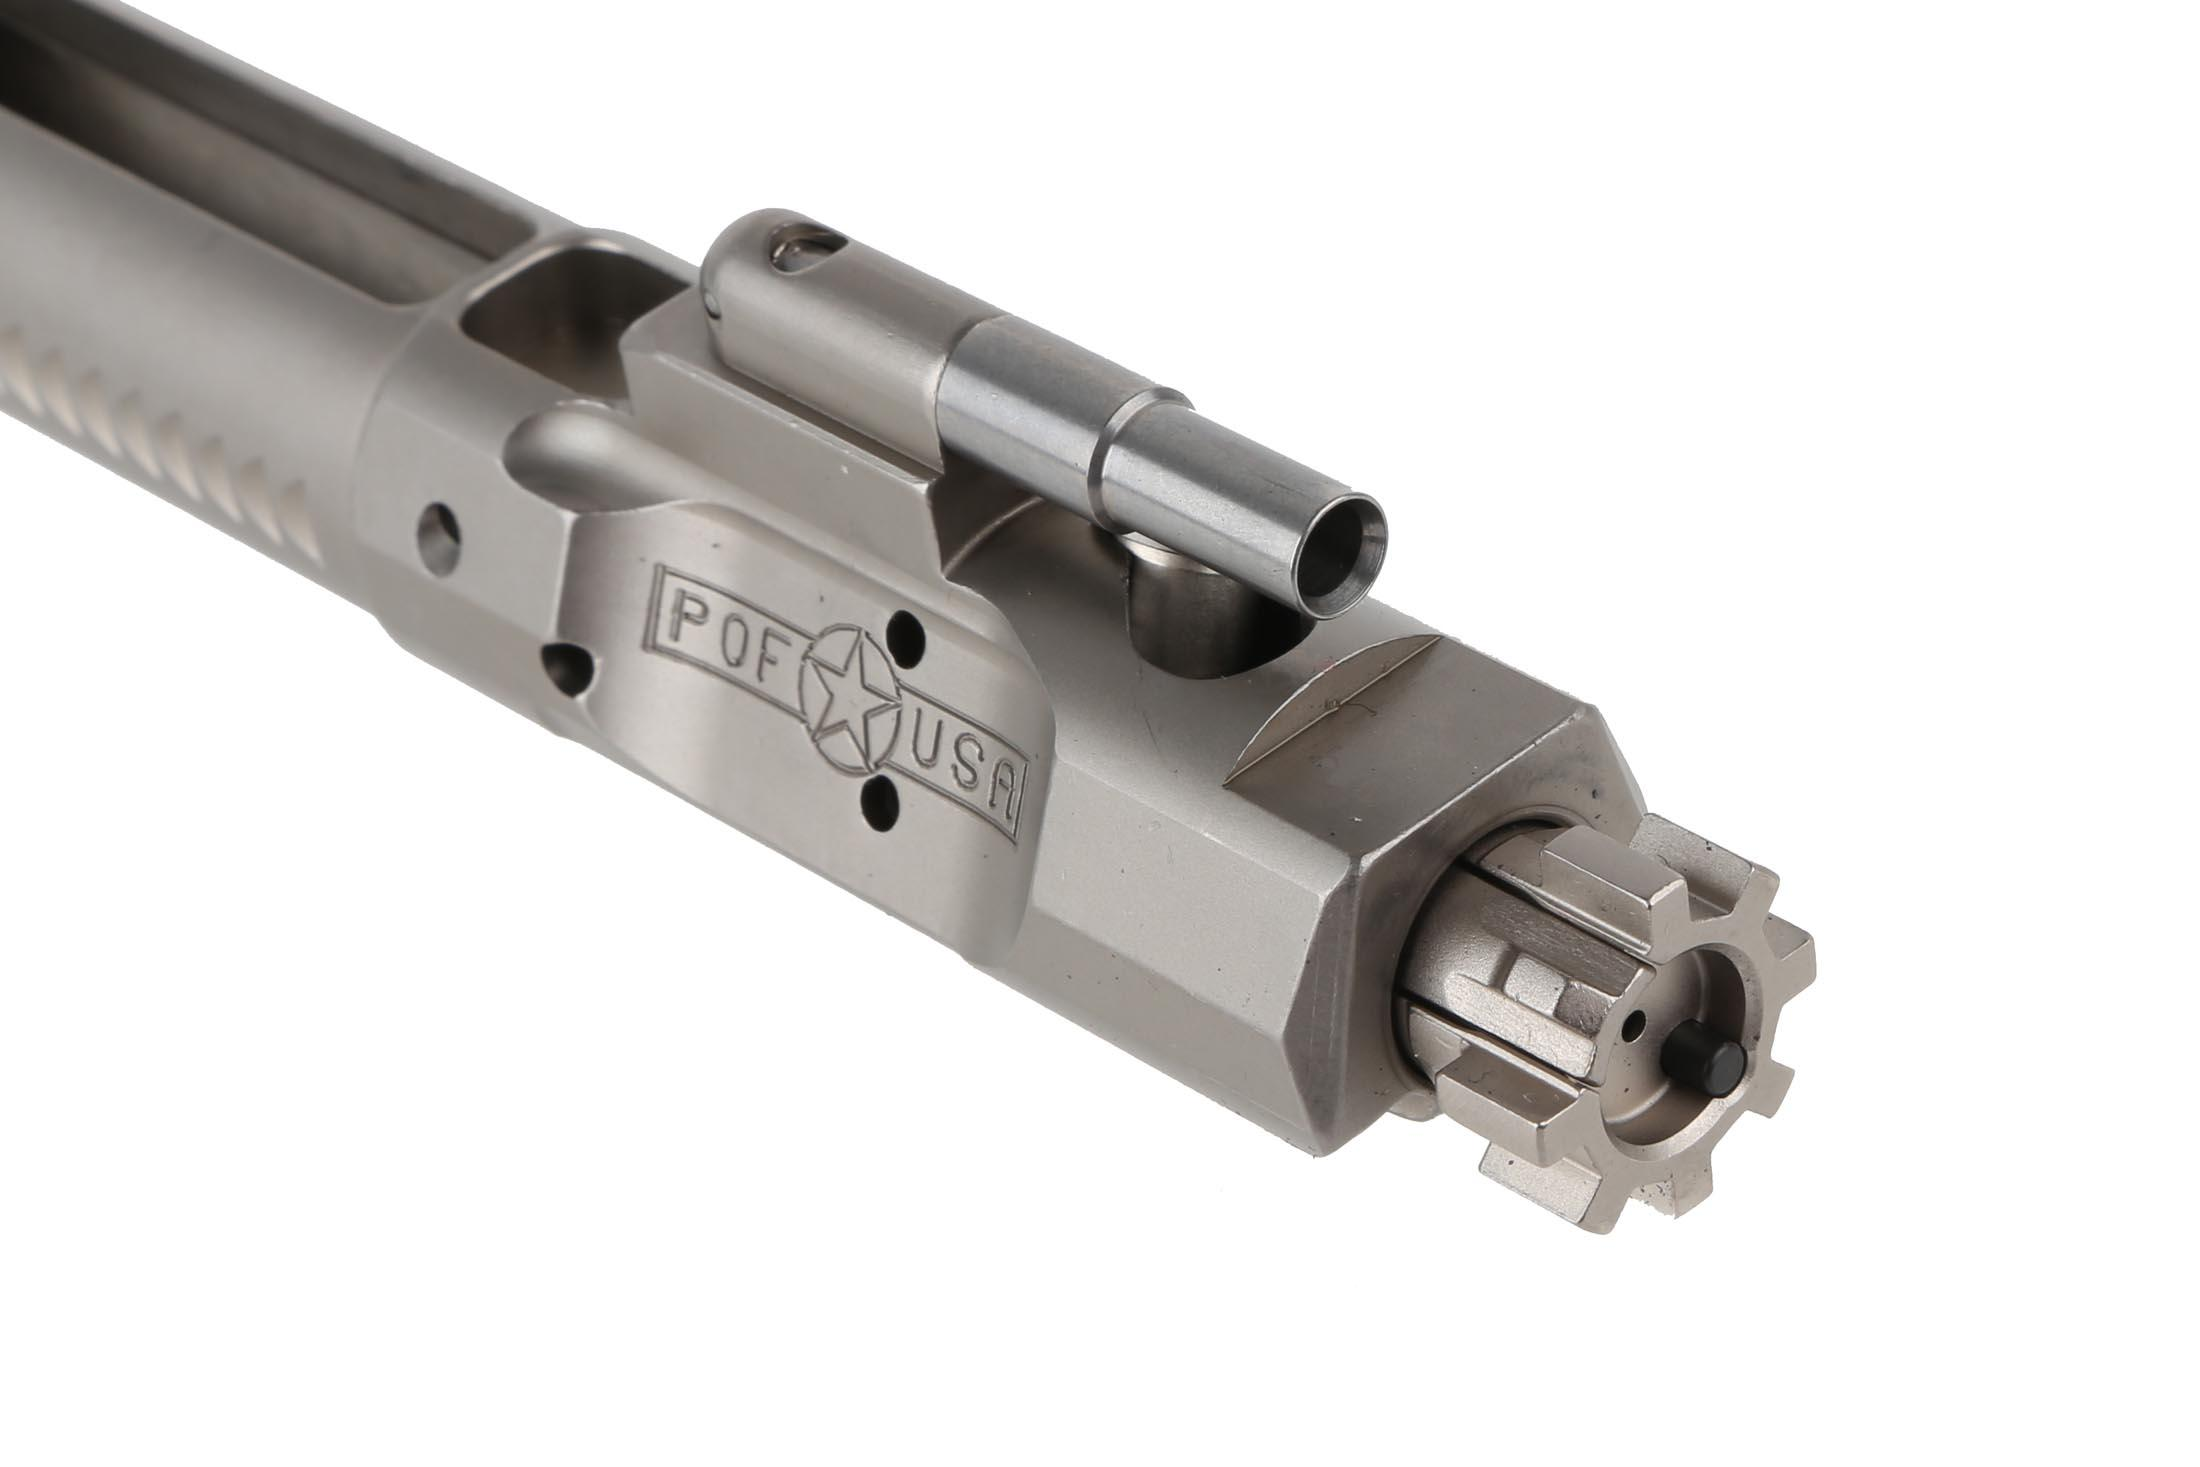 POF USA AR-15/M16 Complete Bolt Carrier Group - NP3 Finish